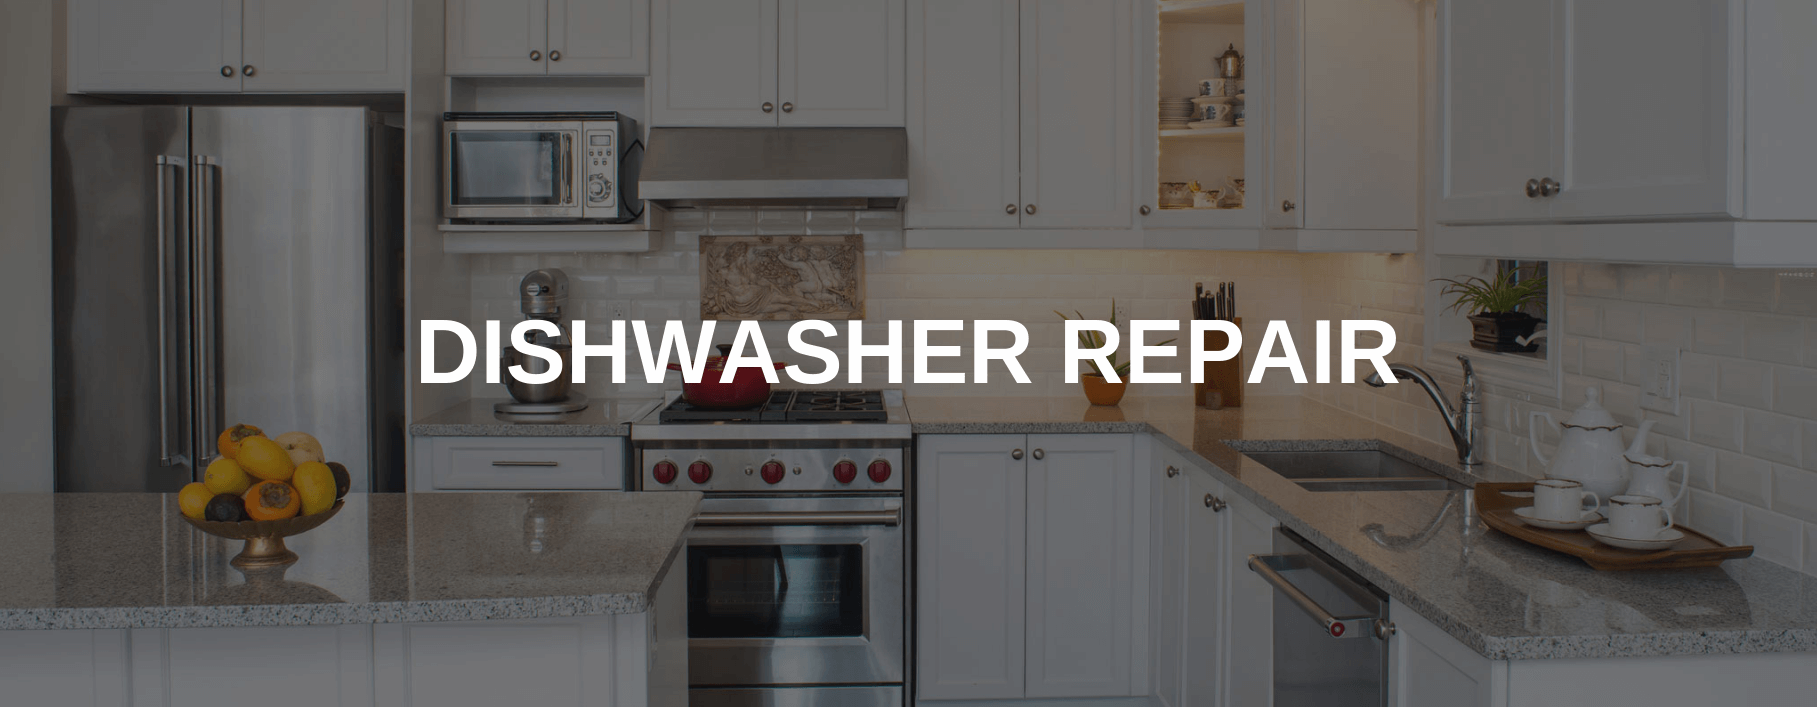 dishwasher repair southington